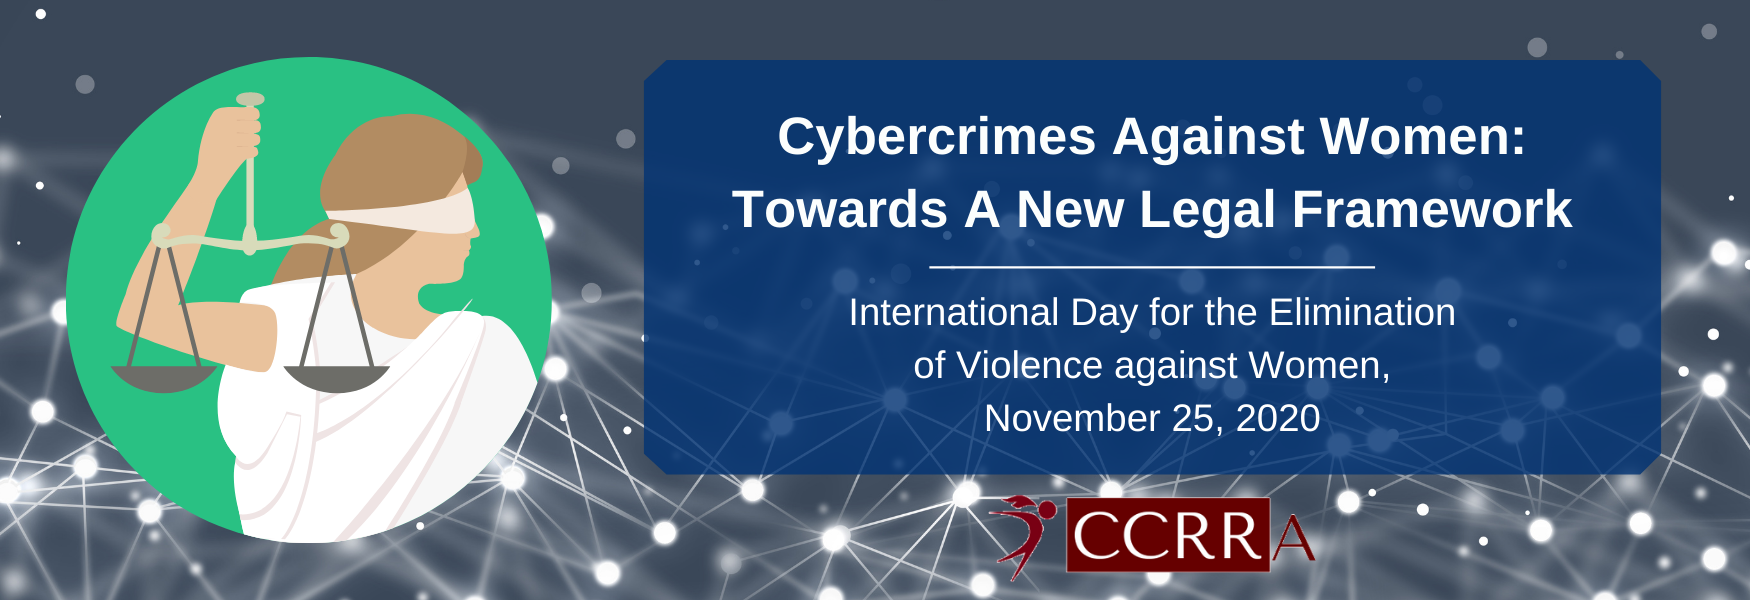 A banner with a dark grey background with white data nodes. To the left is an image of a blindfolded lady holding up balanced scales. To the right is a blue box with white text that reads: Cybercrimes Against Women: Towards A New Legal Framework. International Day for the Elimination of Violence against Women, November 25, 2020.